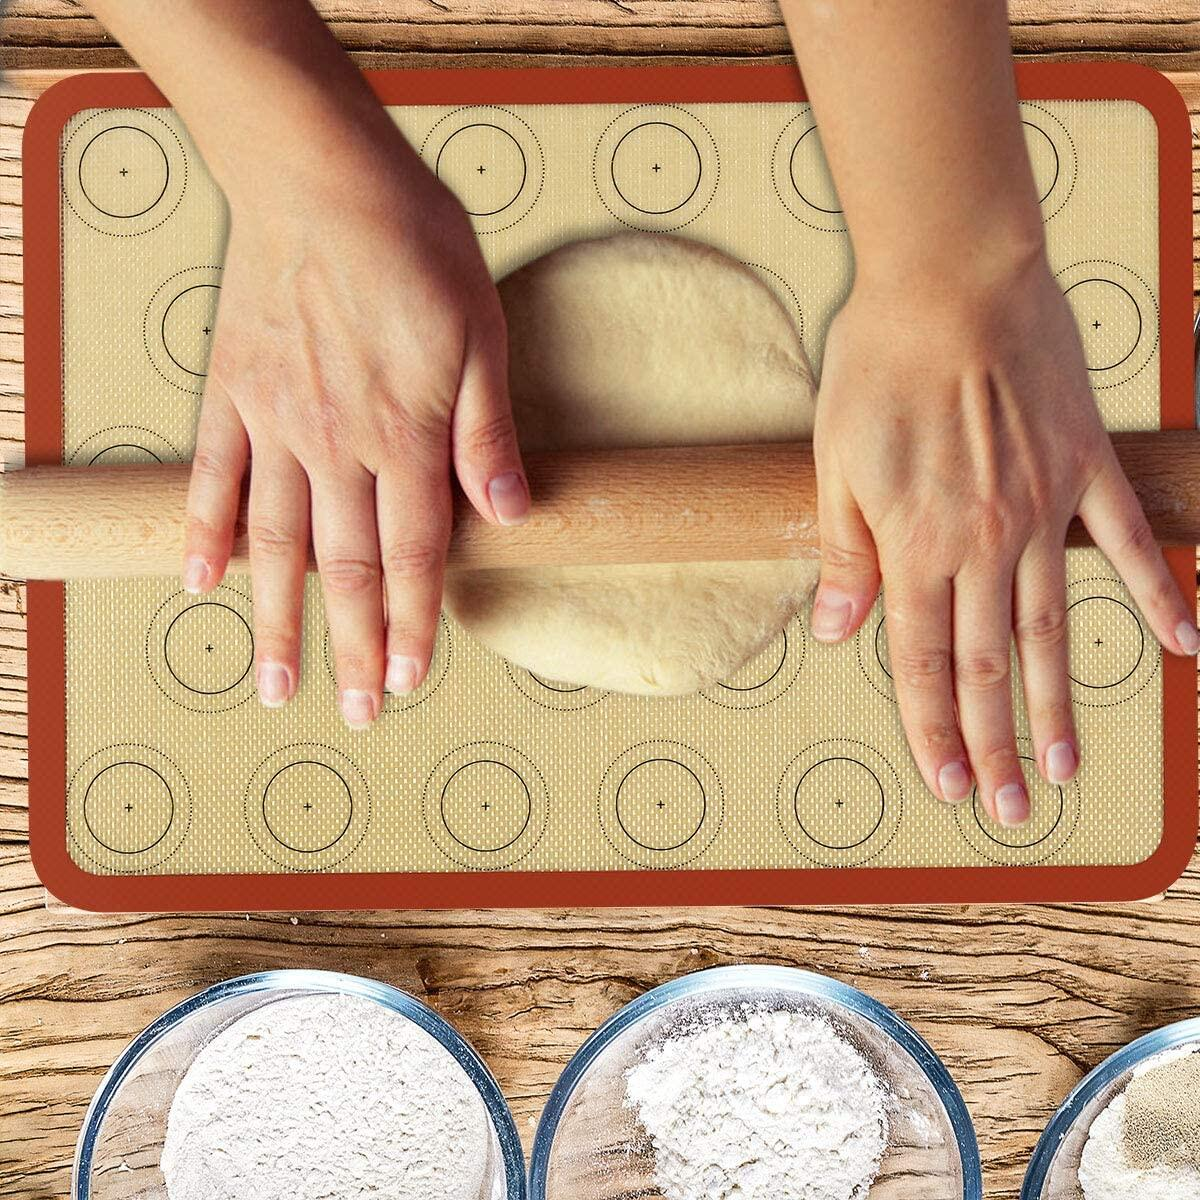 Macaron Silicone Baking Mat Non-Stick Silicon Macaroon Baking Half Sheet Perfect Baking Pad Cookie Kit for for Macarons, Cake, Bread and Pastry Making (Set of 2) by Sunrich